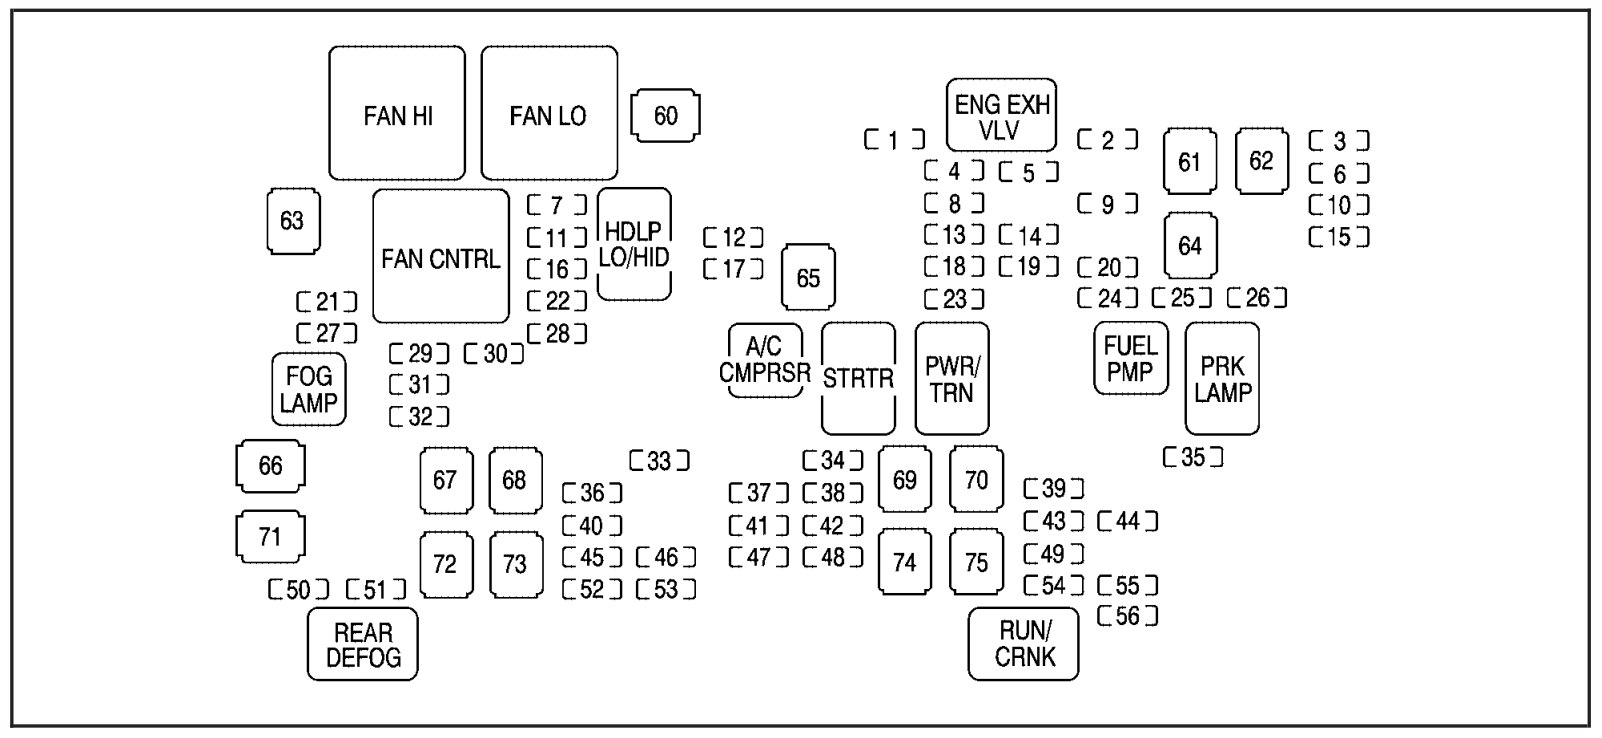 diagram of engine compartment for 1998 chevy tahoe great fuse diagram for 2007 chevy tahoe detailed wiring diagram rh 7 4 ocotillo paysage com 1998 chevy tahoe brake diagram 1998 chevy tahoe front end parts